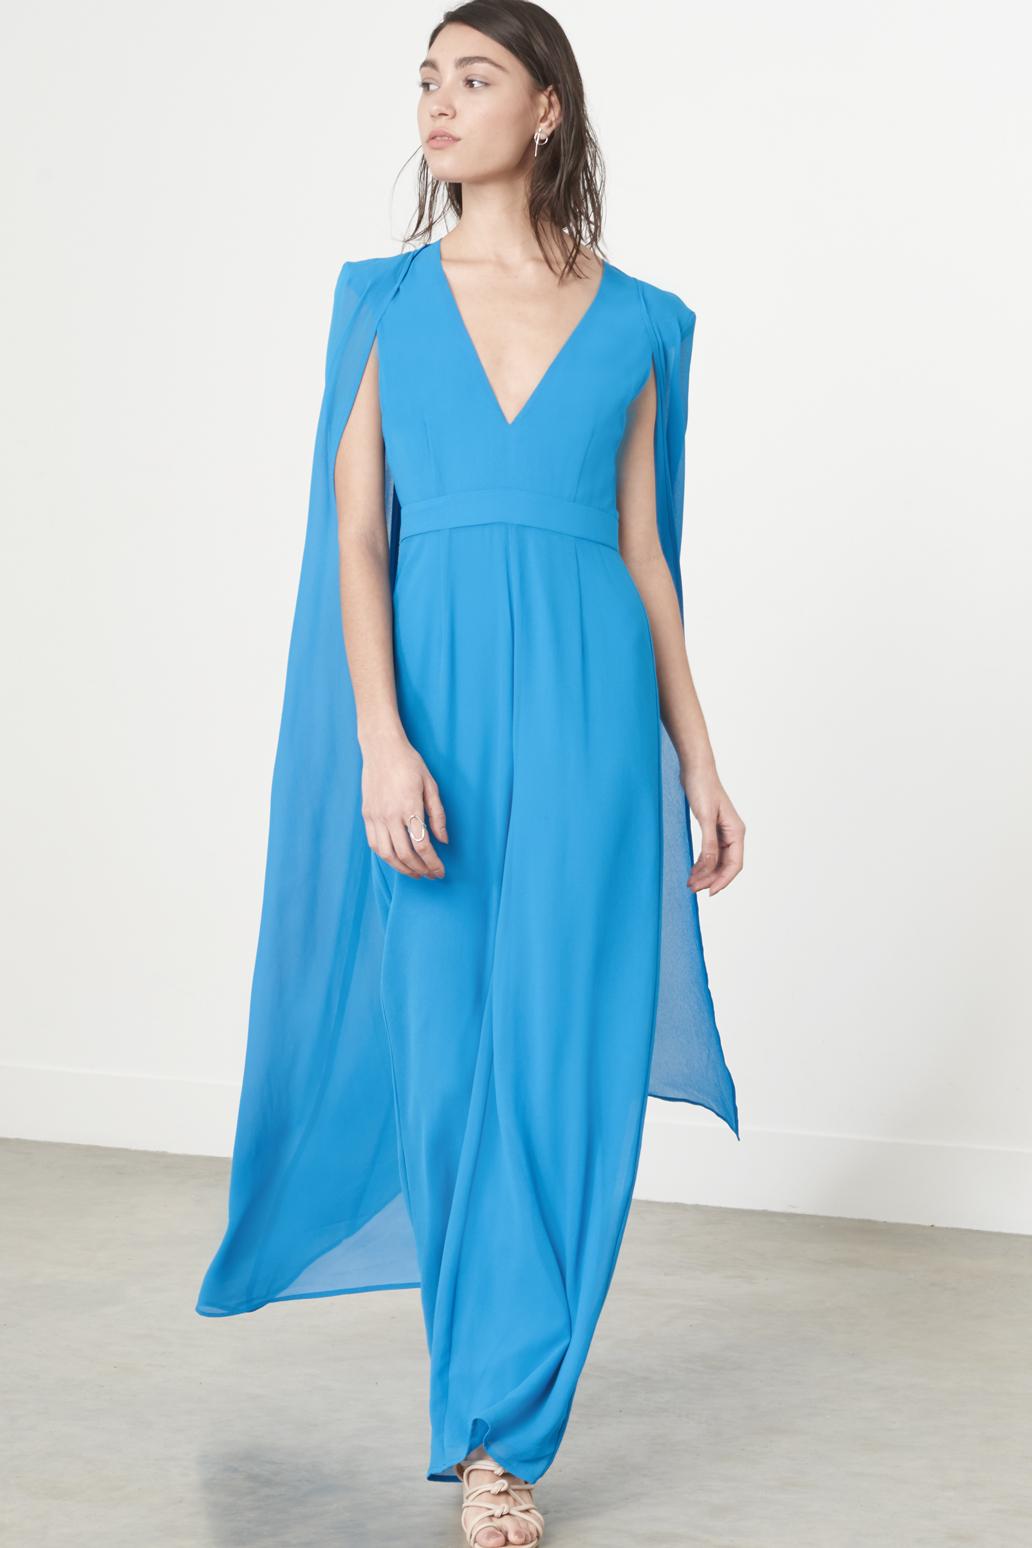 Cereulean chiffon cape jumpsuit, £84 @ Narah & Co.jpg